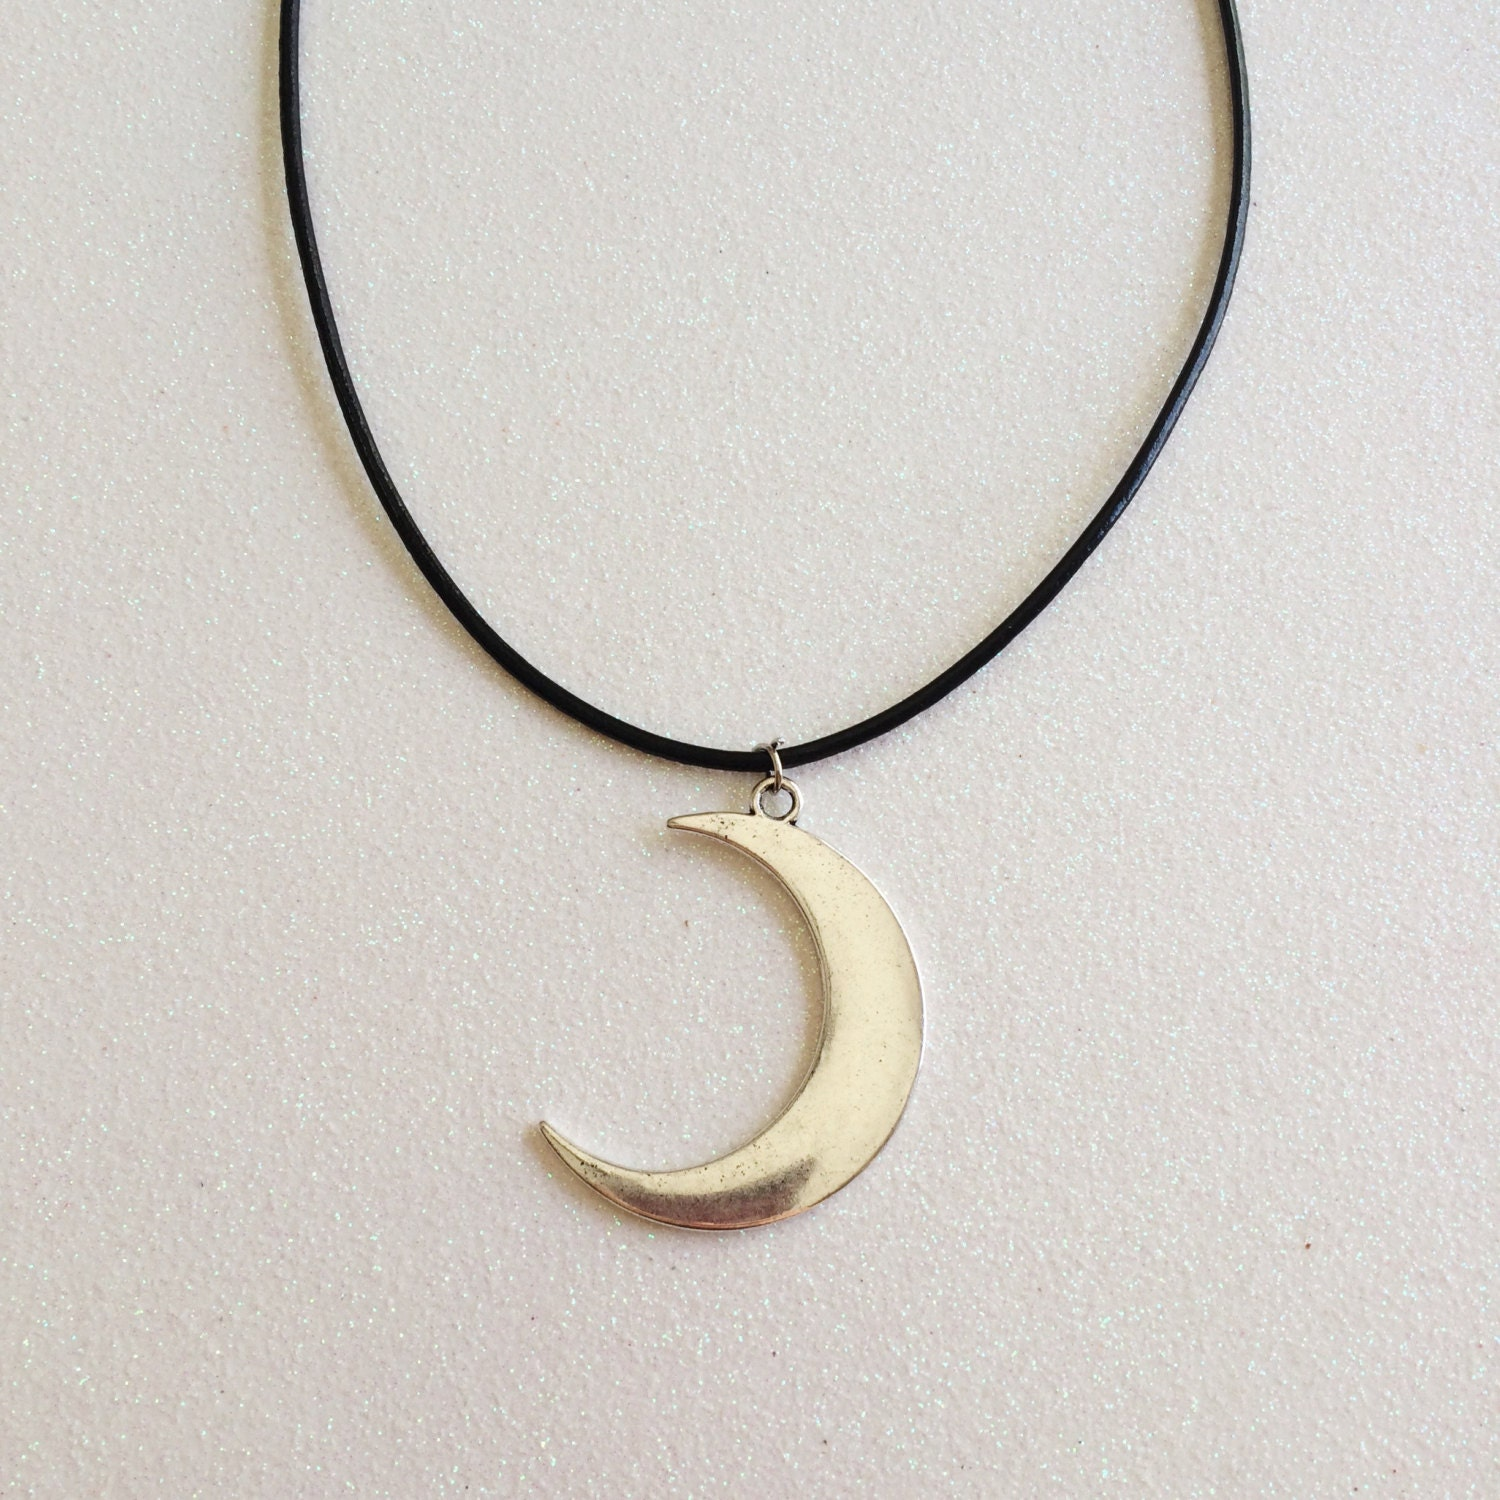 Choker Necklace Etsy: Crescent Moon Necklace/Choker